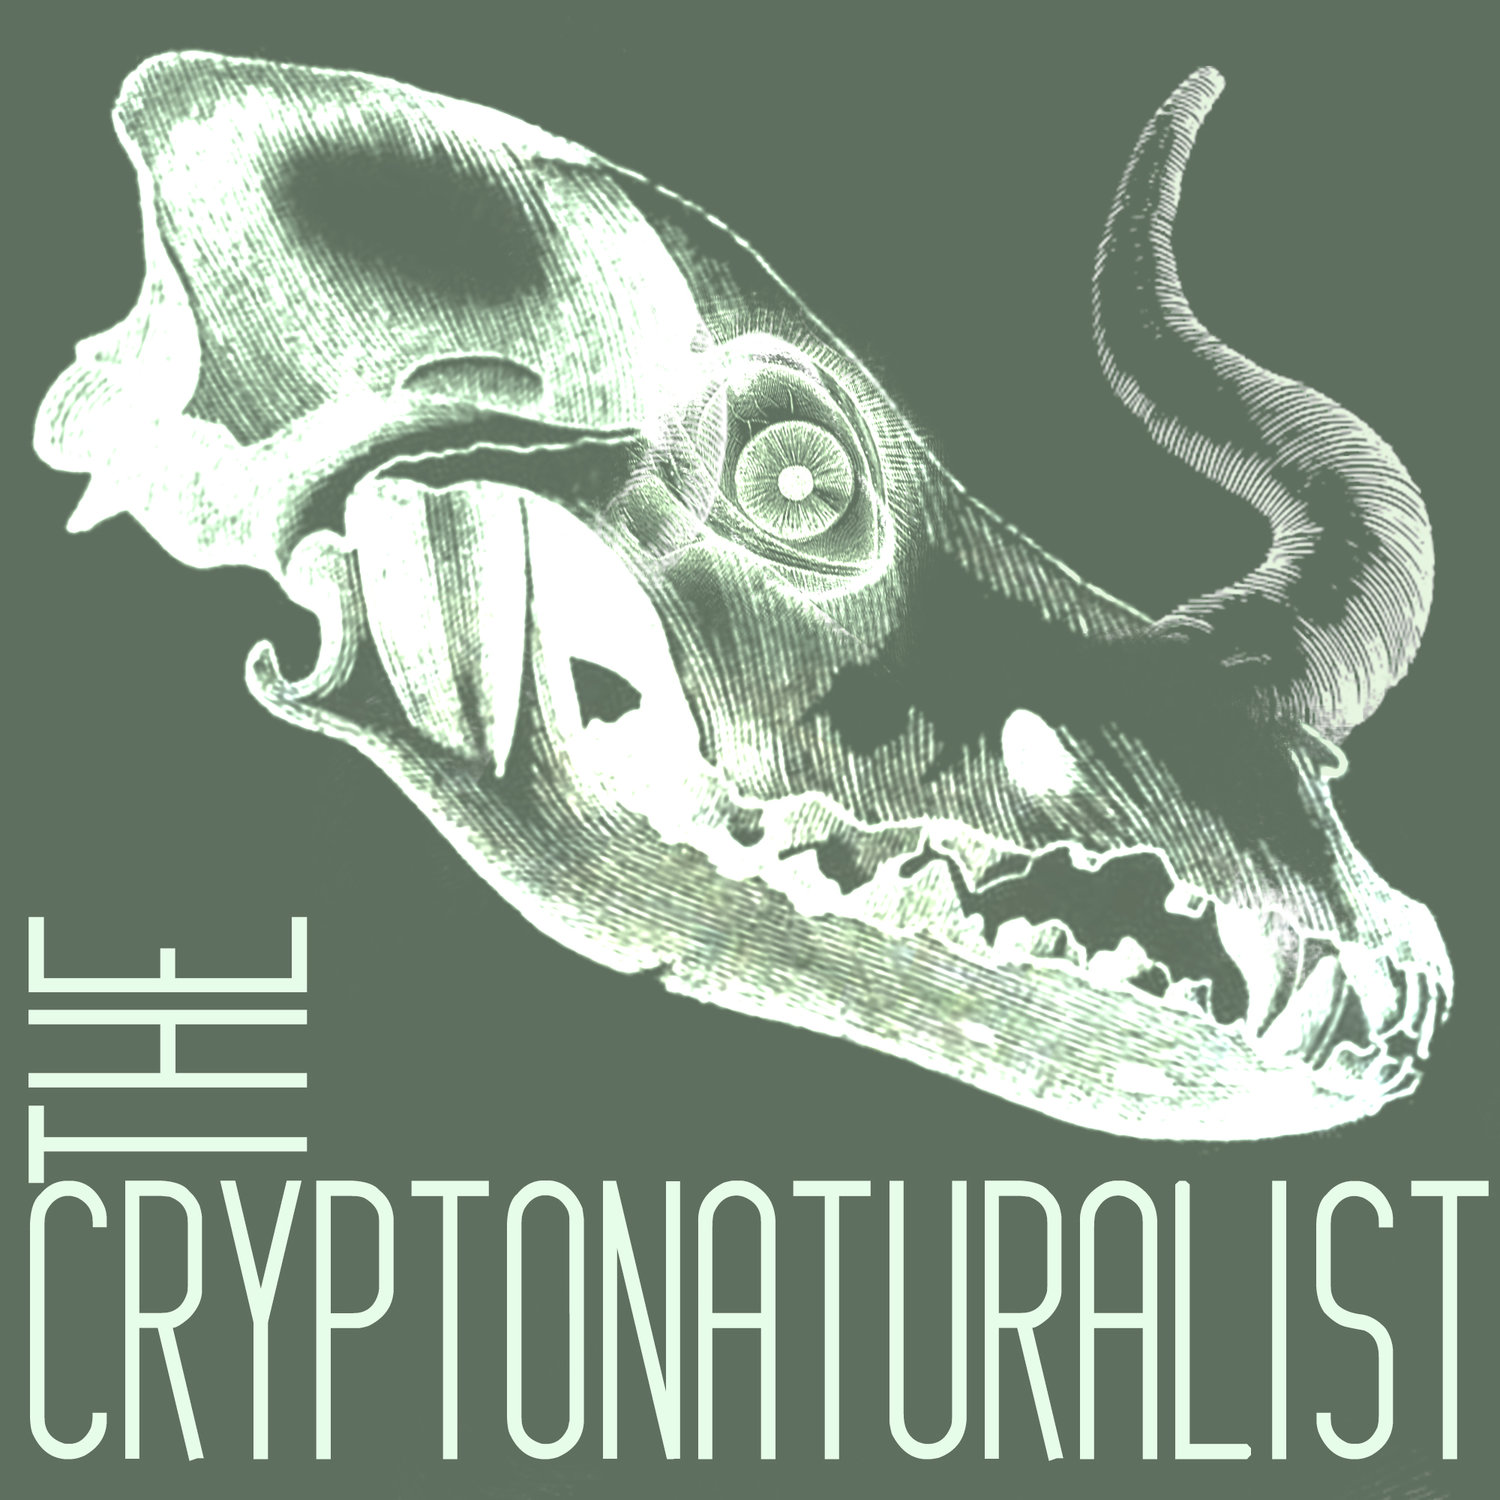 The Cryptonaturalist Podcast